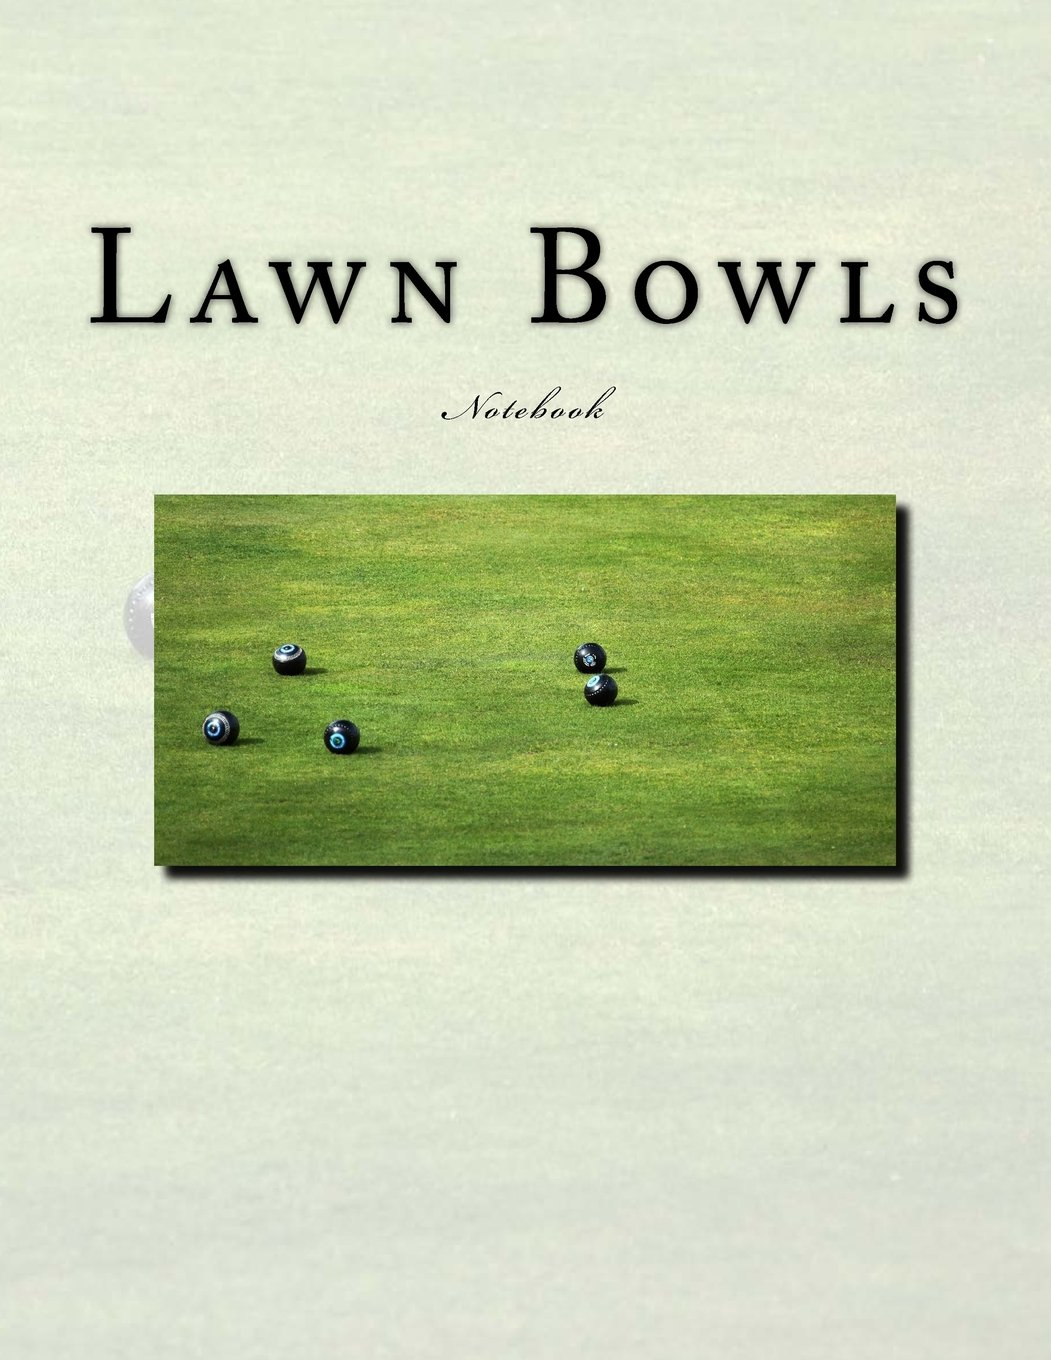 Lawn Bowls Notebook: Notebook with 150 lined pages